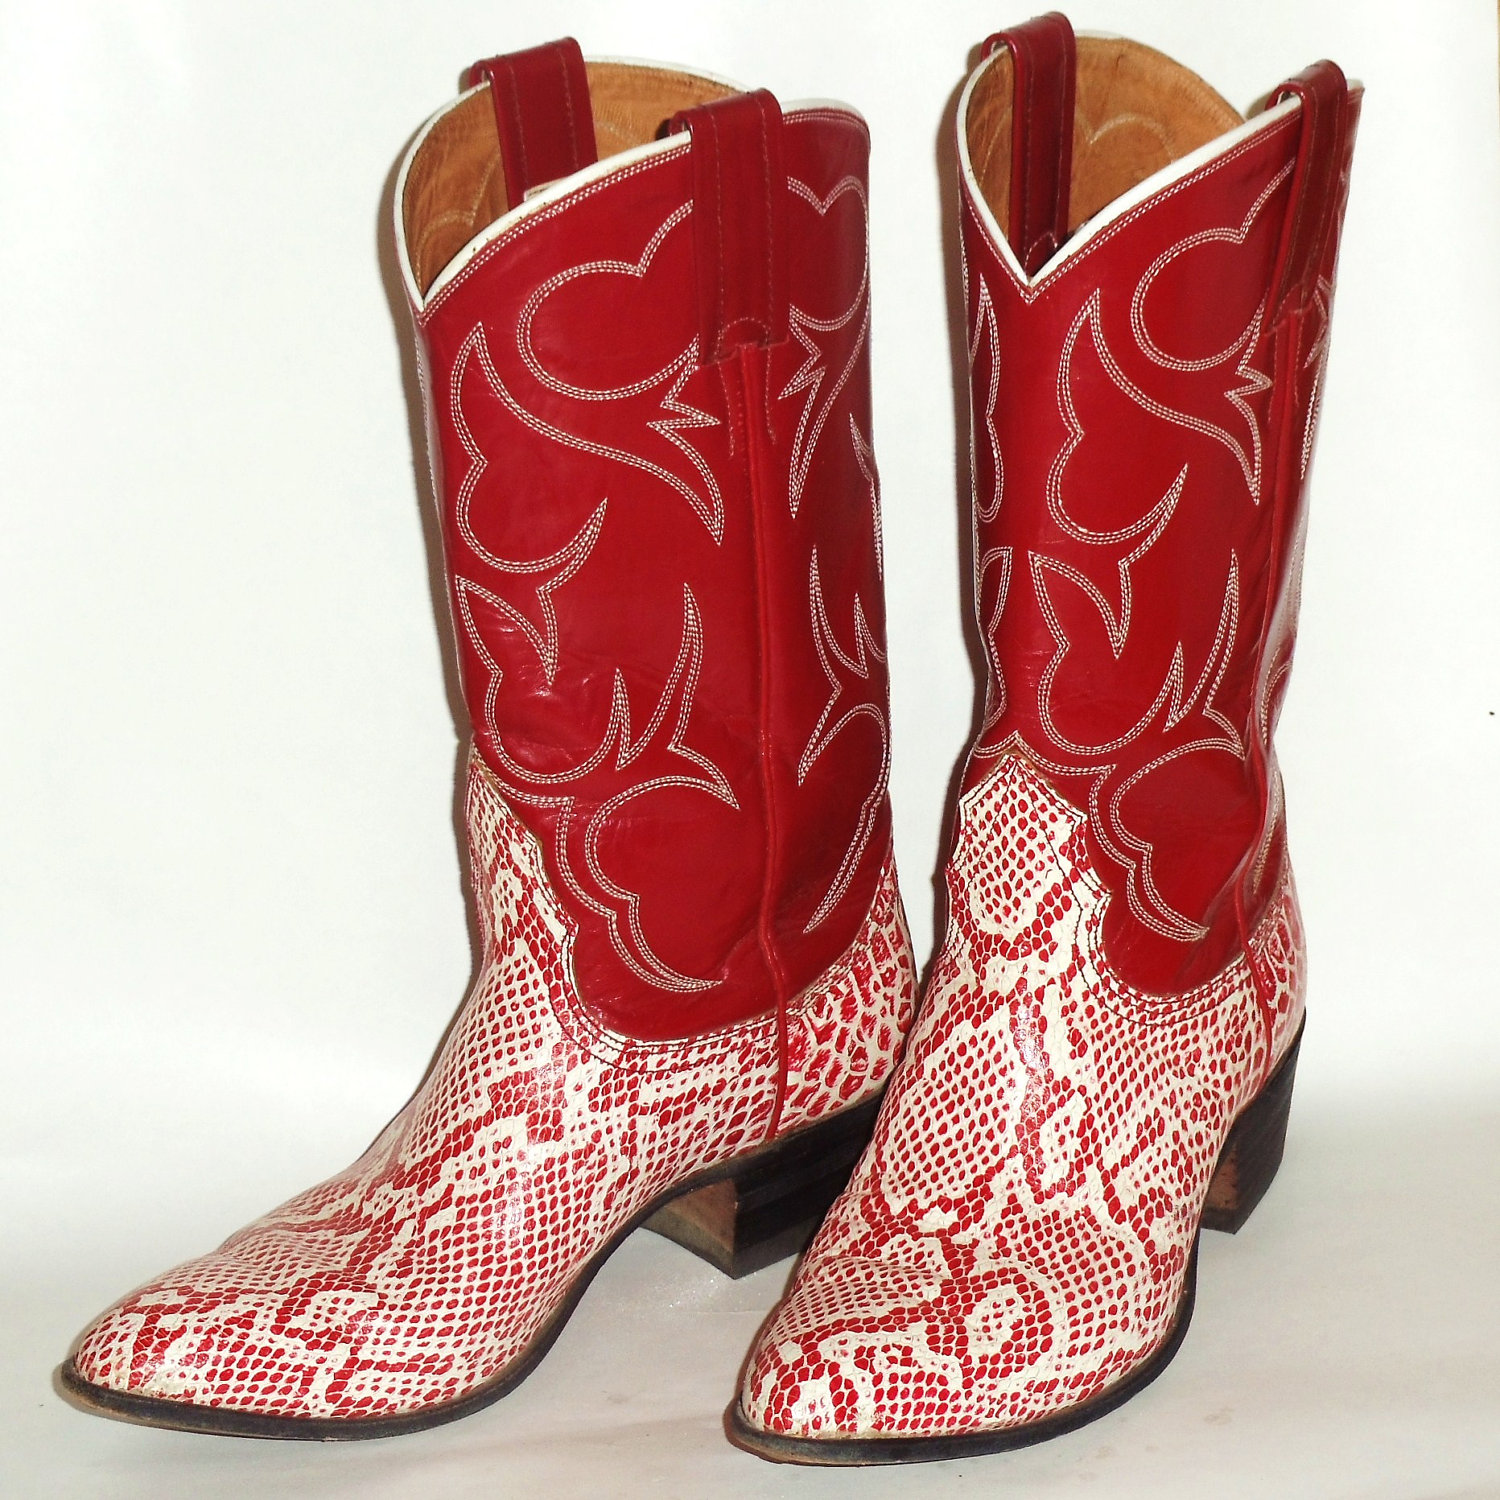 Womens Red Cowboy Boots mok66hb6